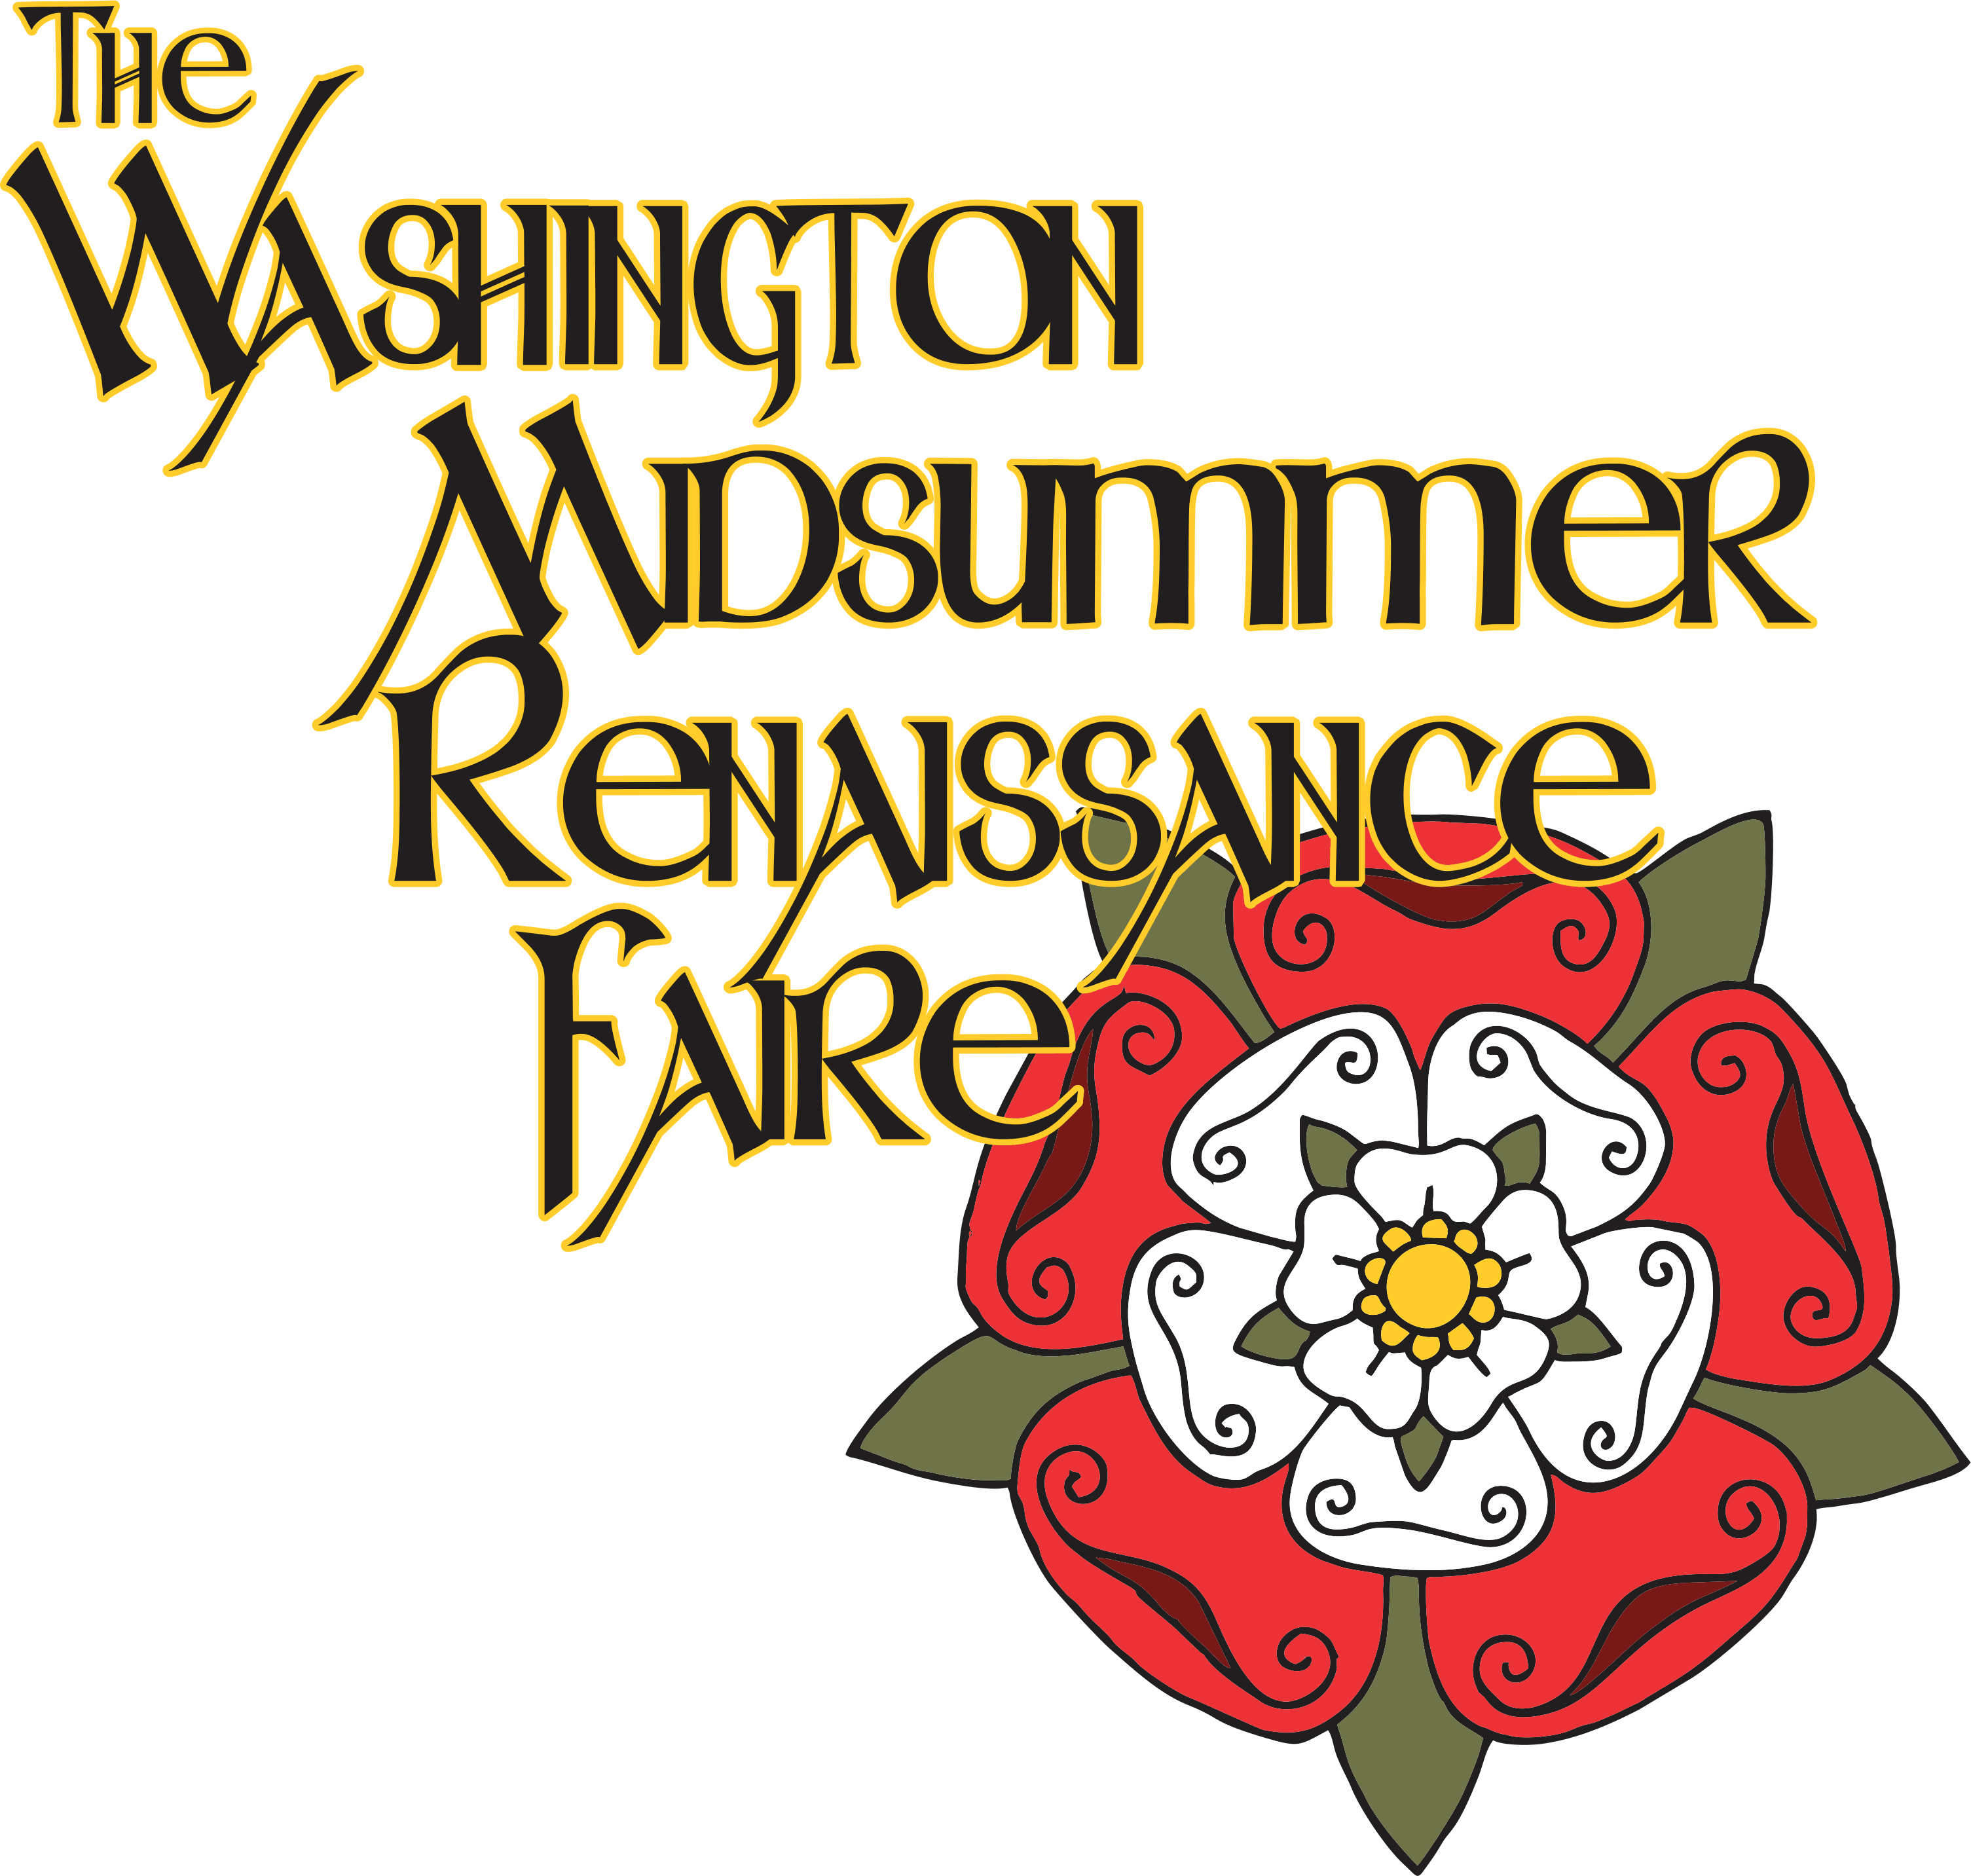 Free Invoice Pdf Pdf Washington Midsummer Renaissance Faire August         What Is Invoice Price On A Car with Fedex International Invoice Excel Event Saved Can Gift Cards Be Returned With A Receipt Pdf